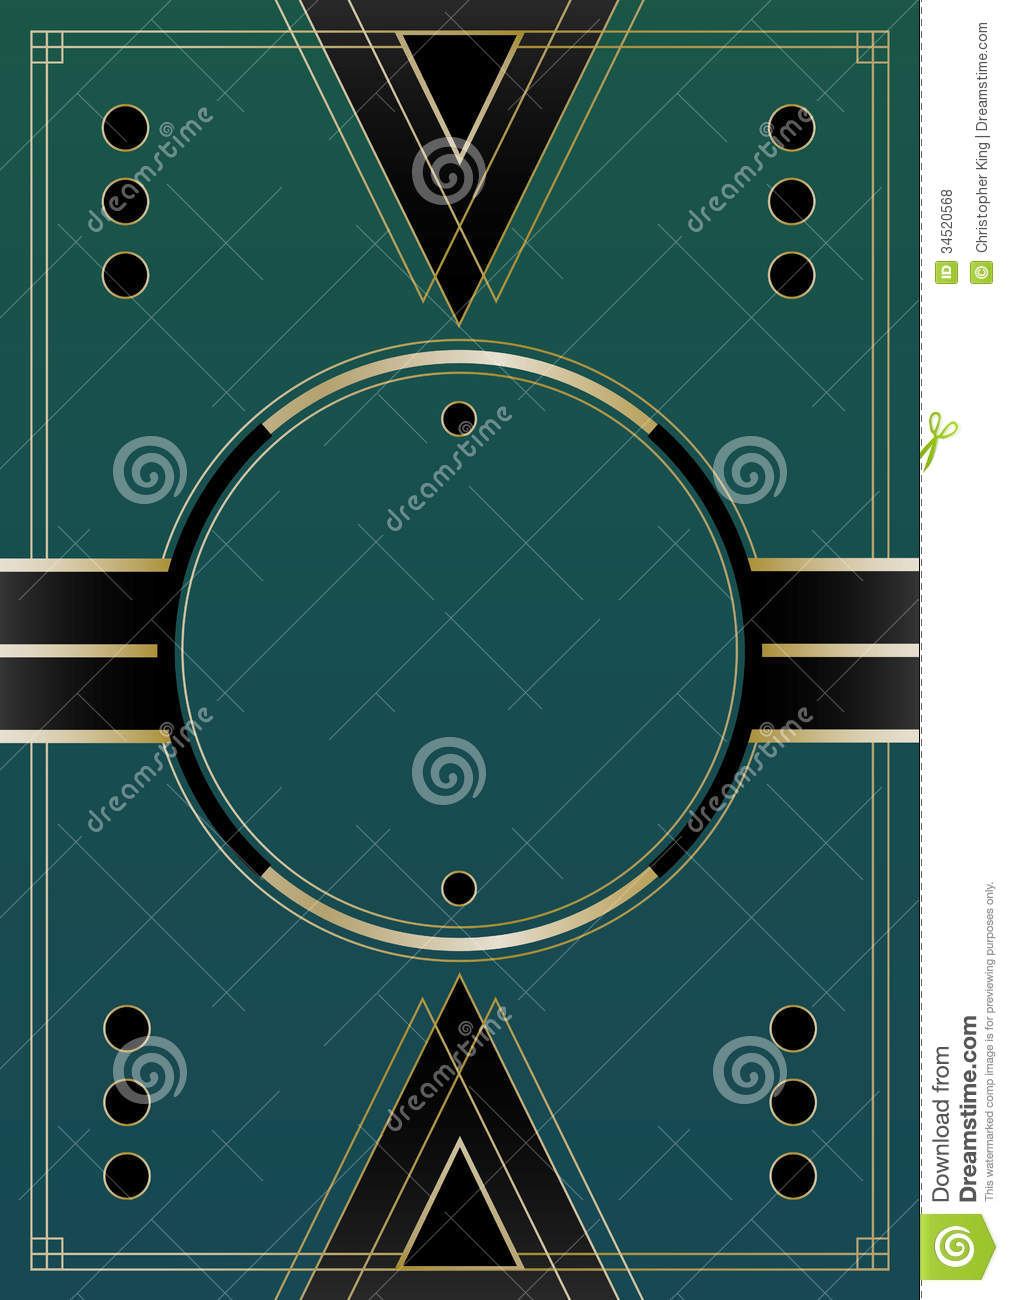 Circles Art Deco Background Royalty Free Stock Photos